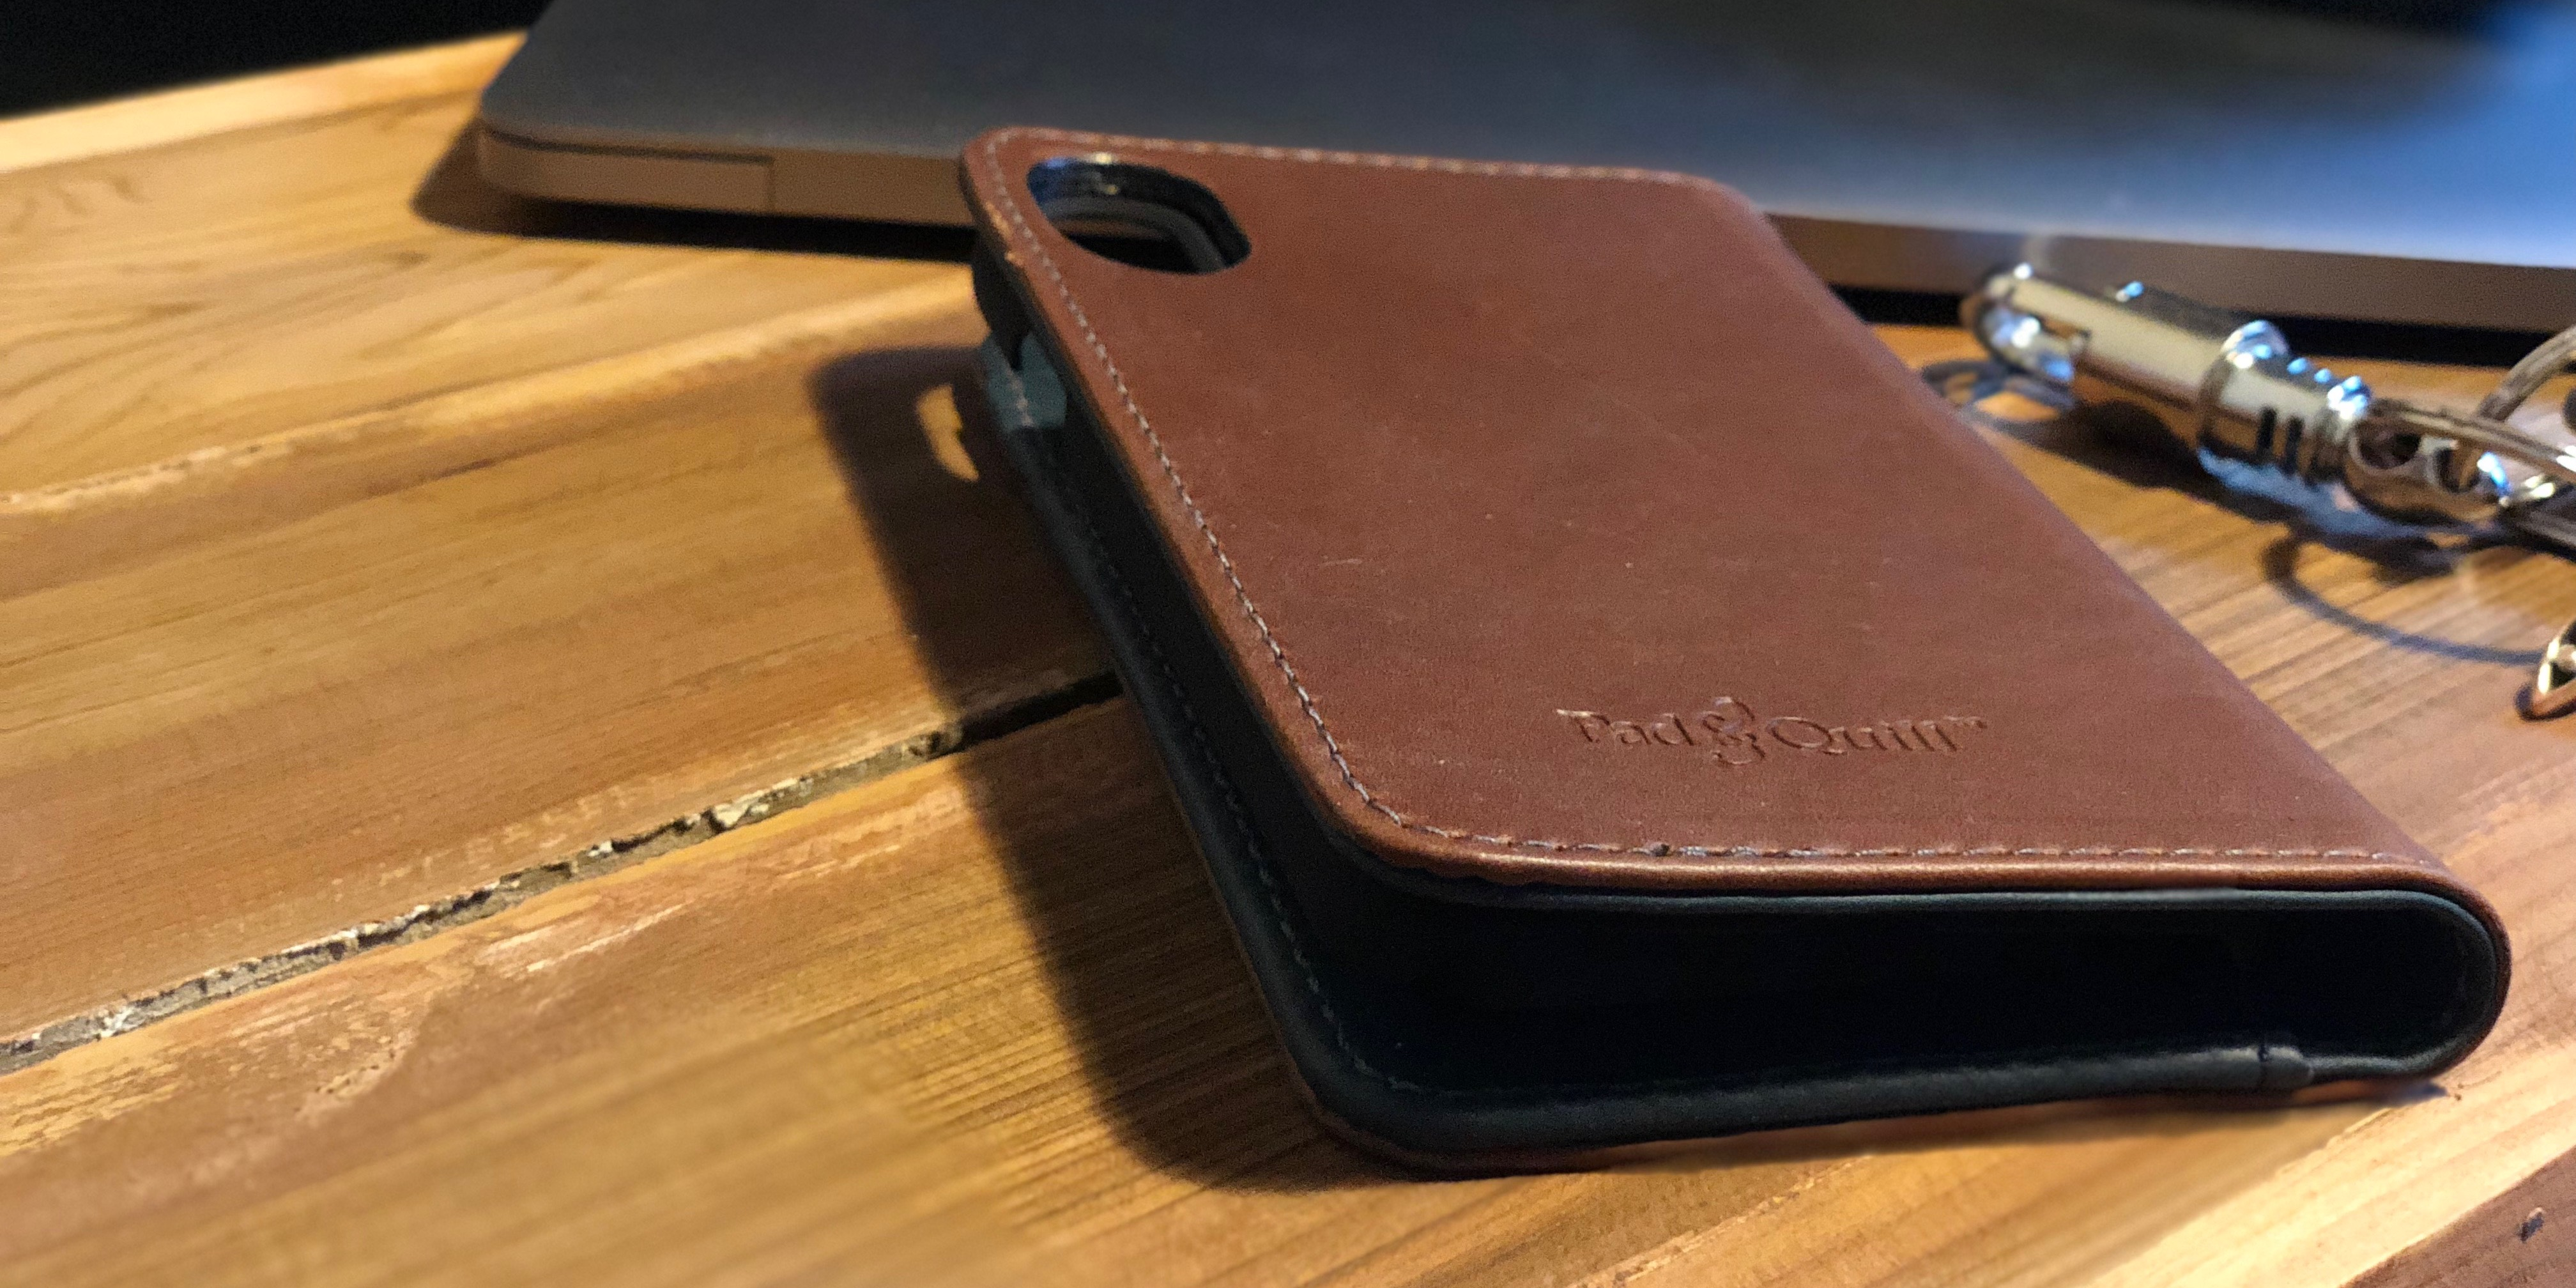 new concept 53456 d67a6 Review: Pad & Quill's Bella Fino iPhone X Wallet Case delivers w ...